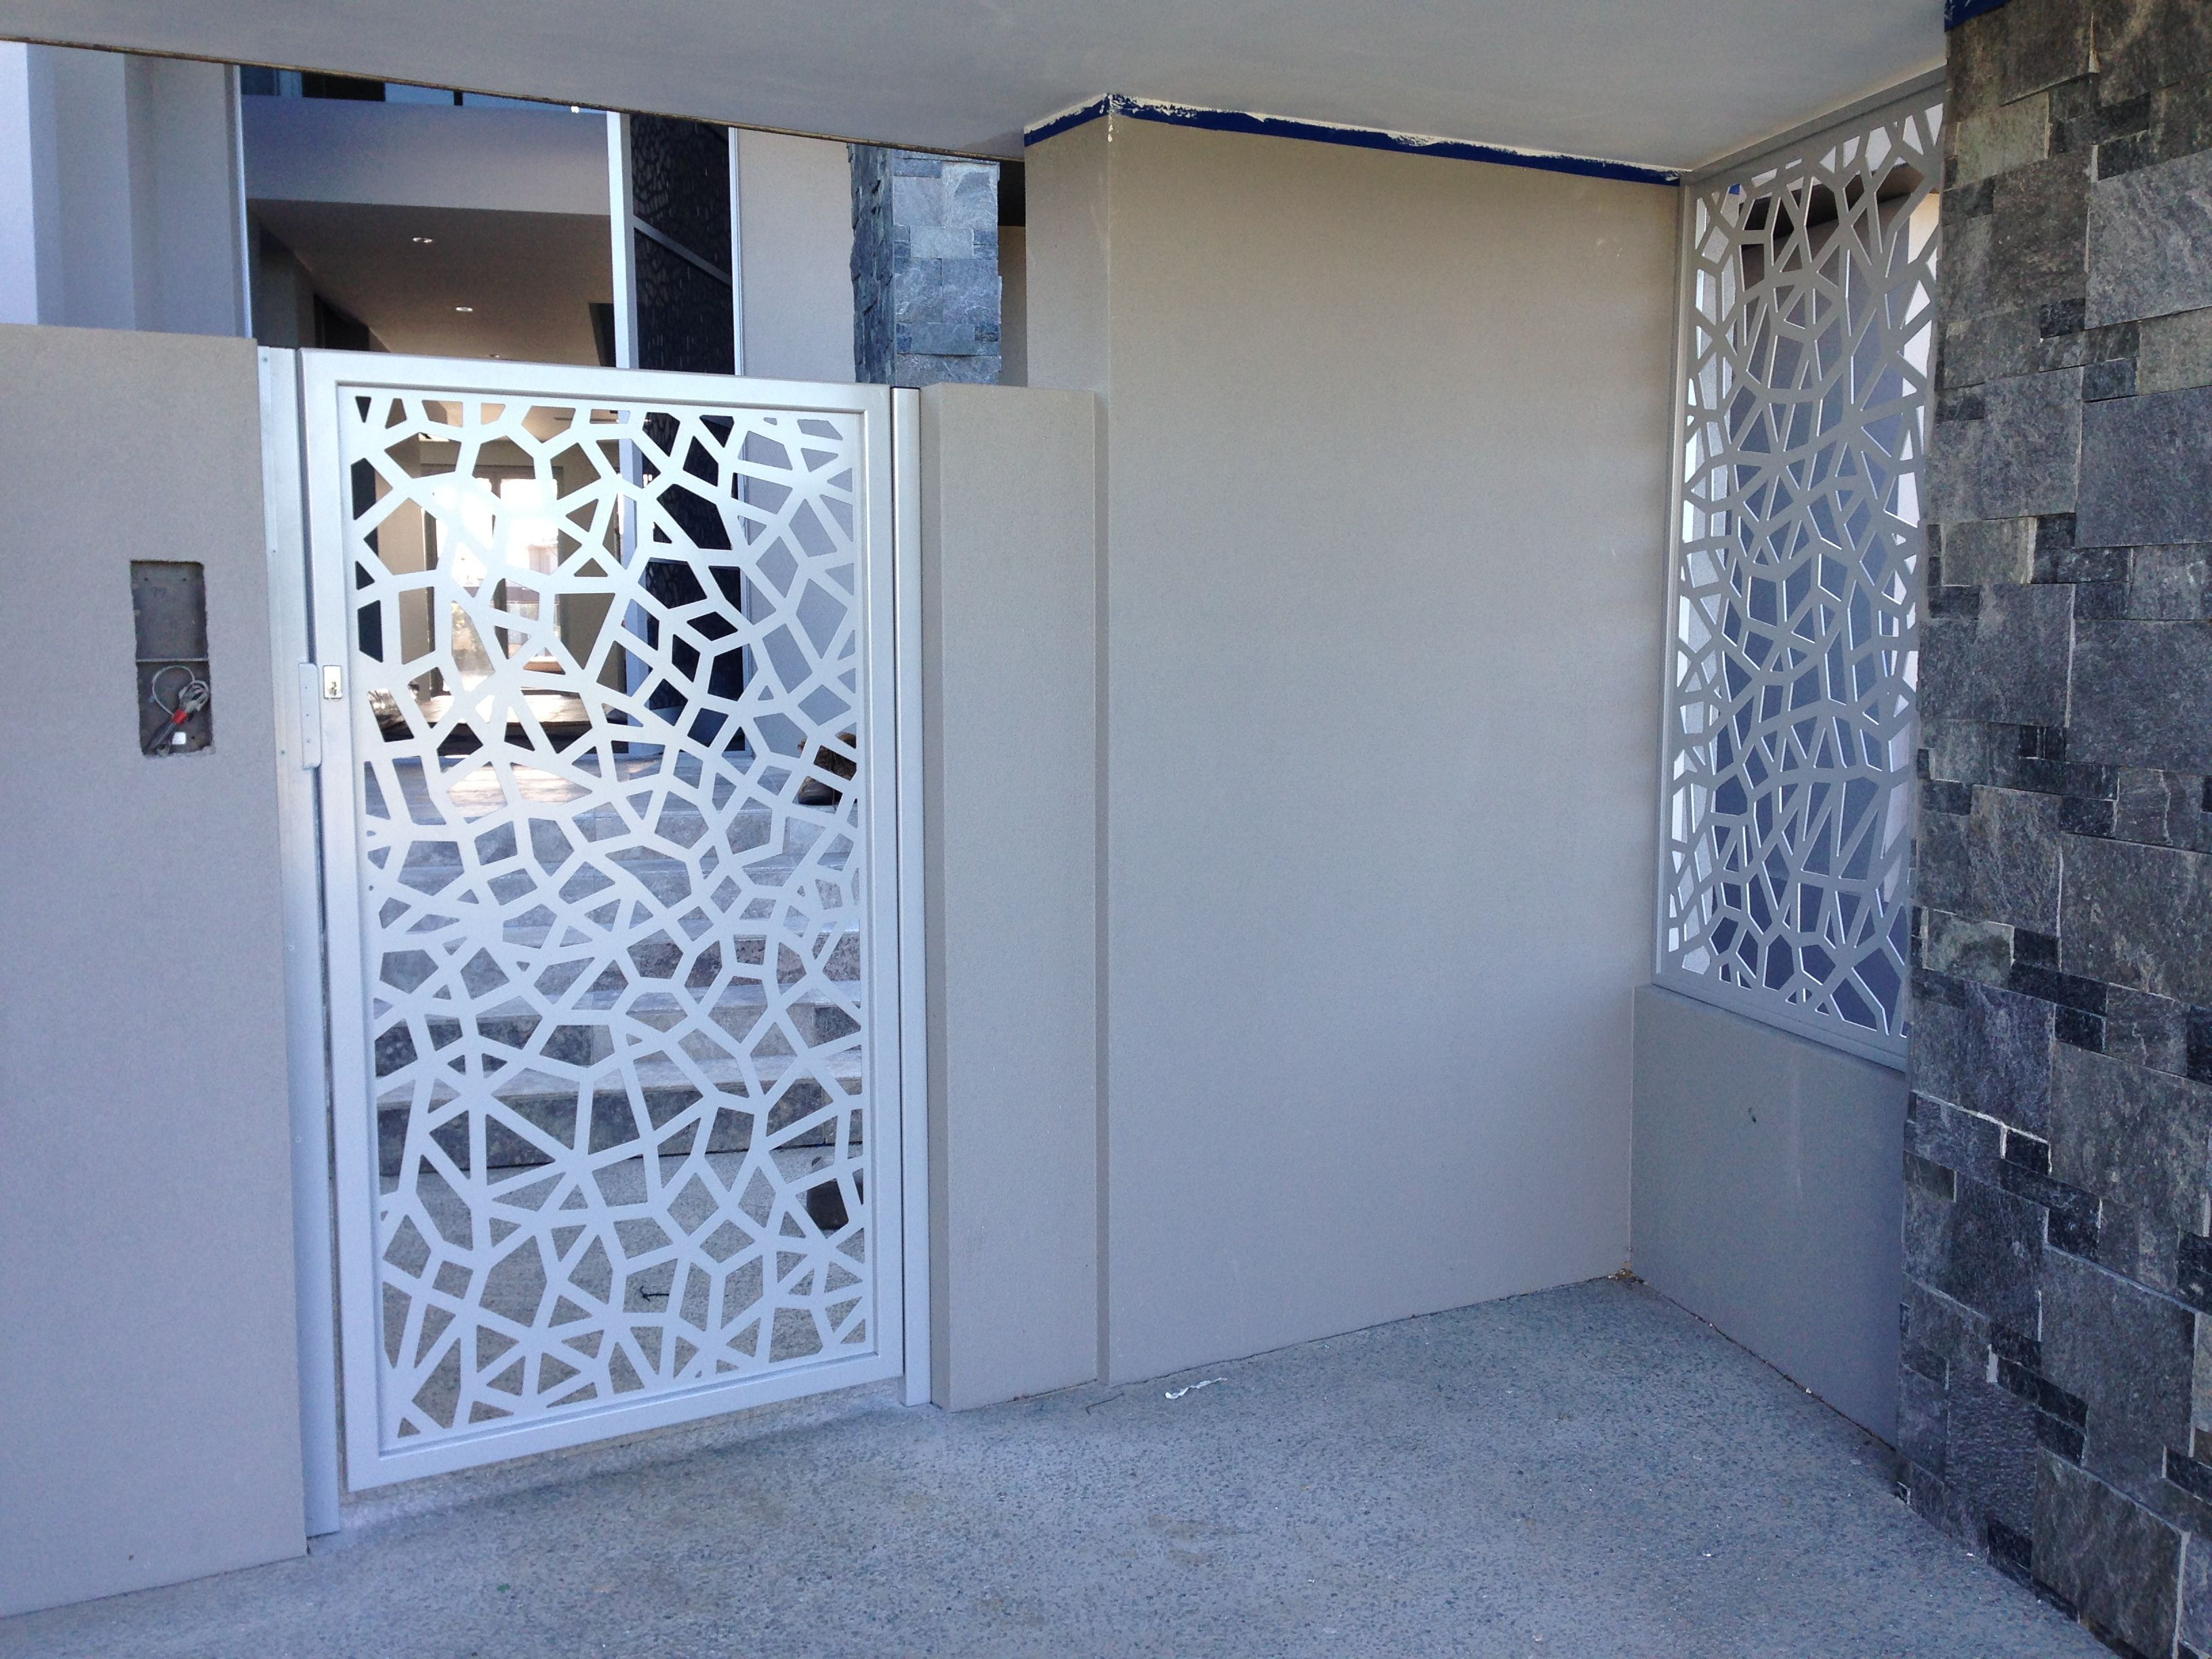 Screen Art Security Gate and Side Feature for Main Apartment ...